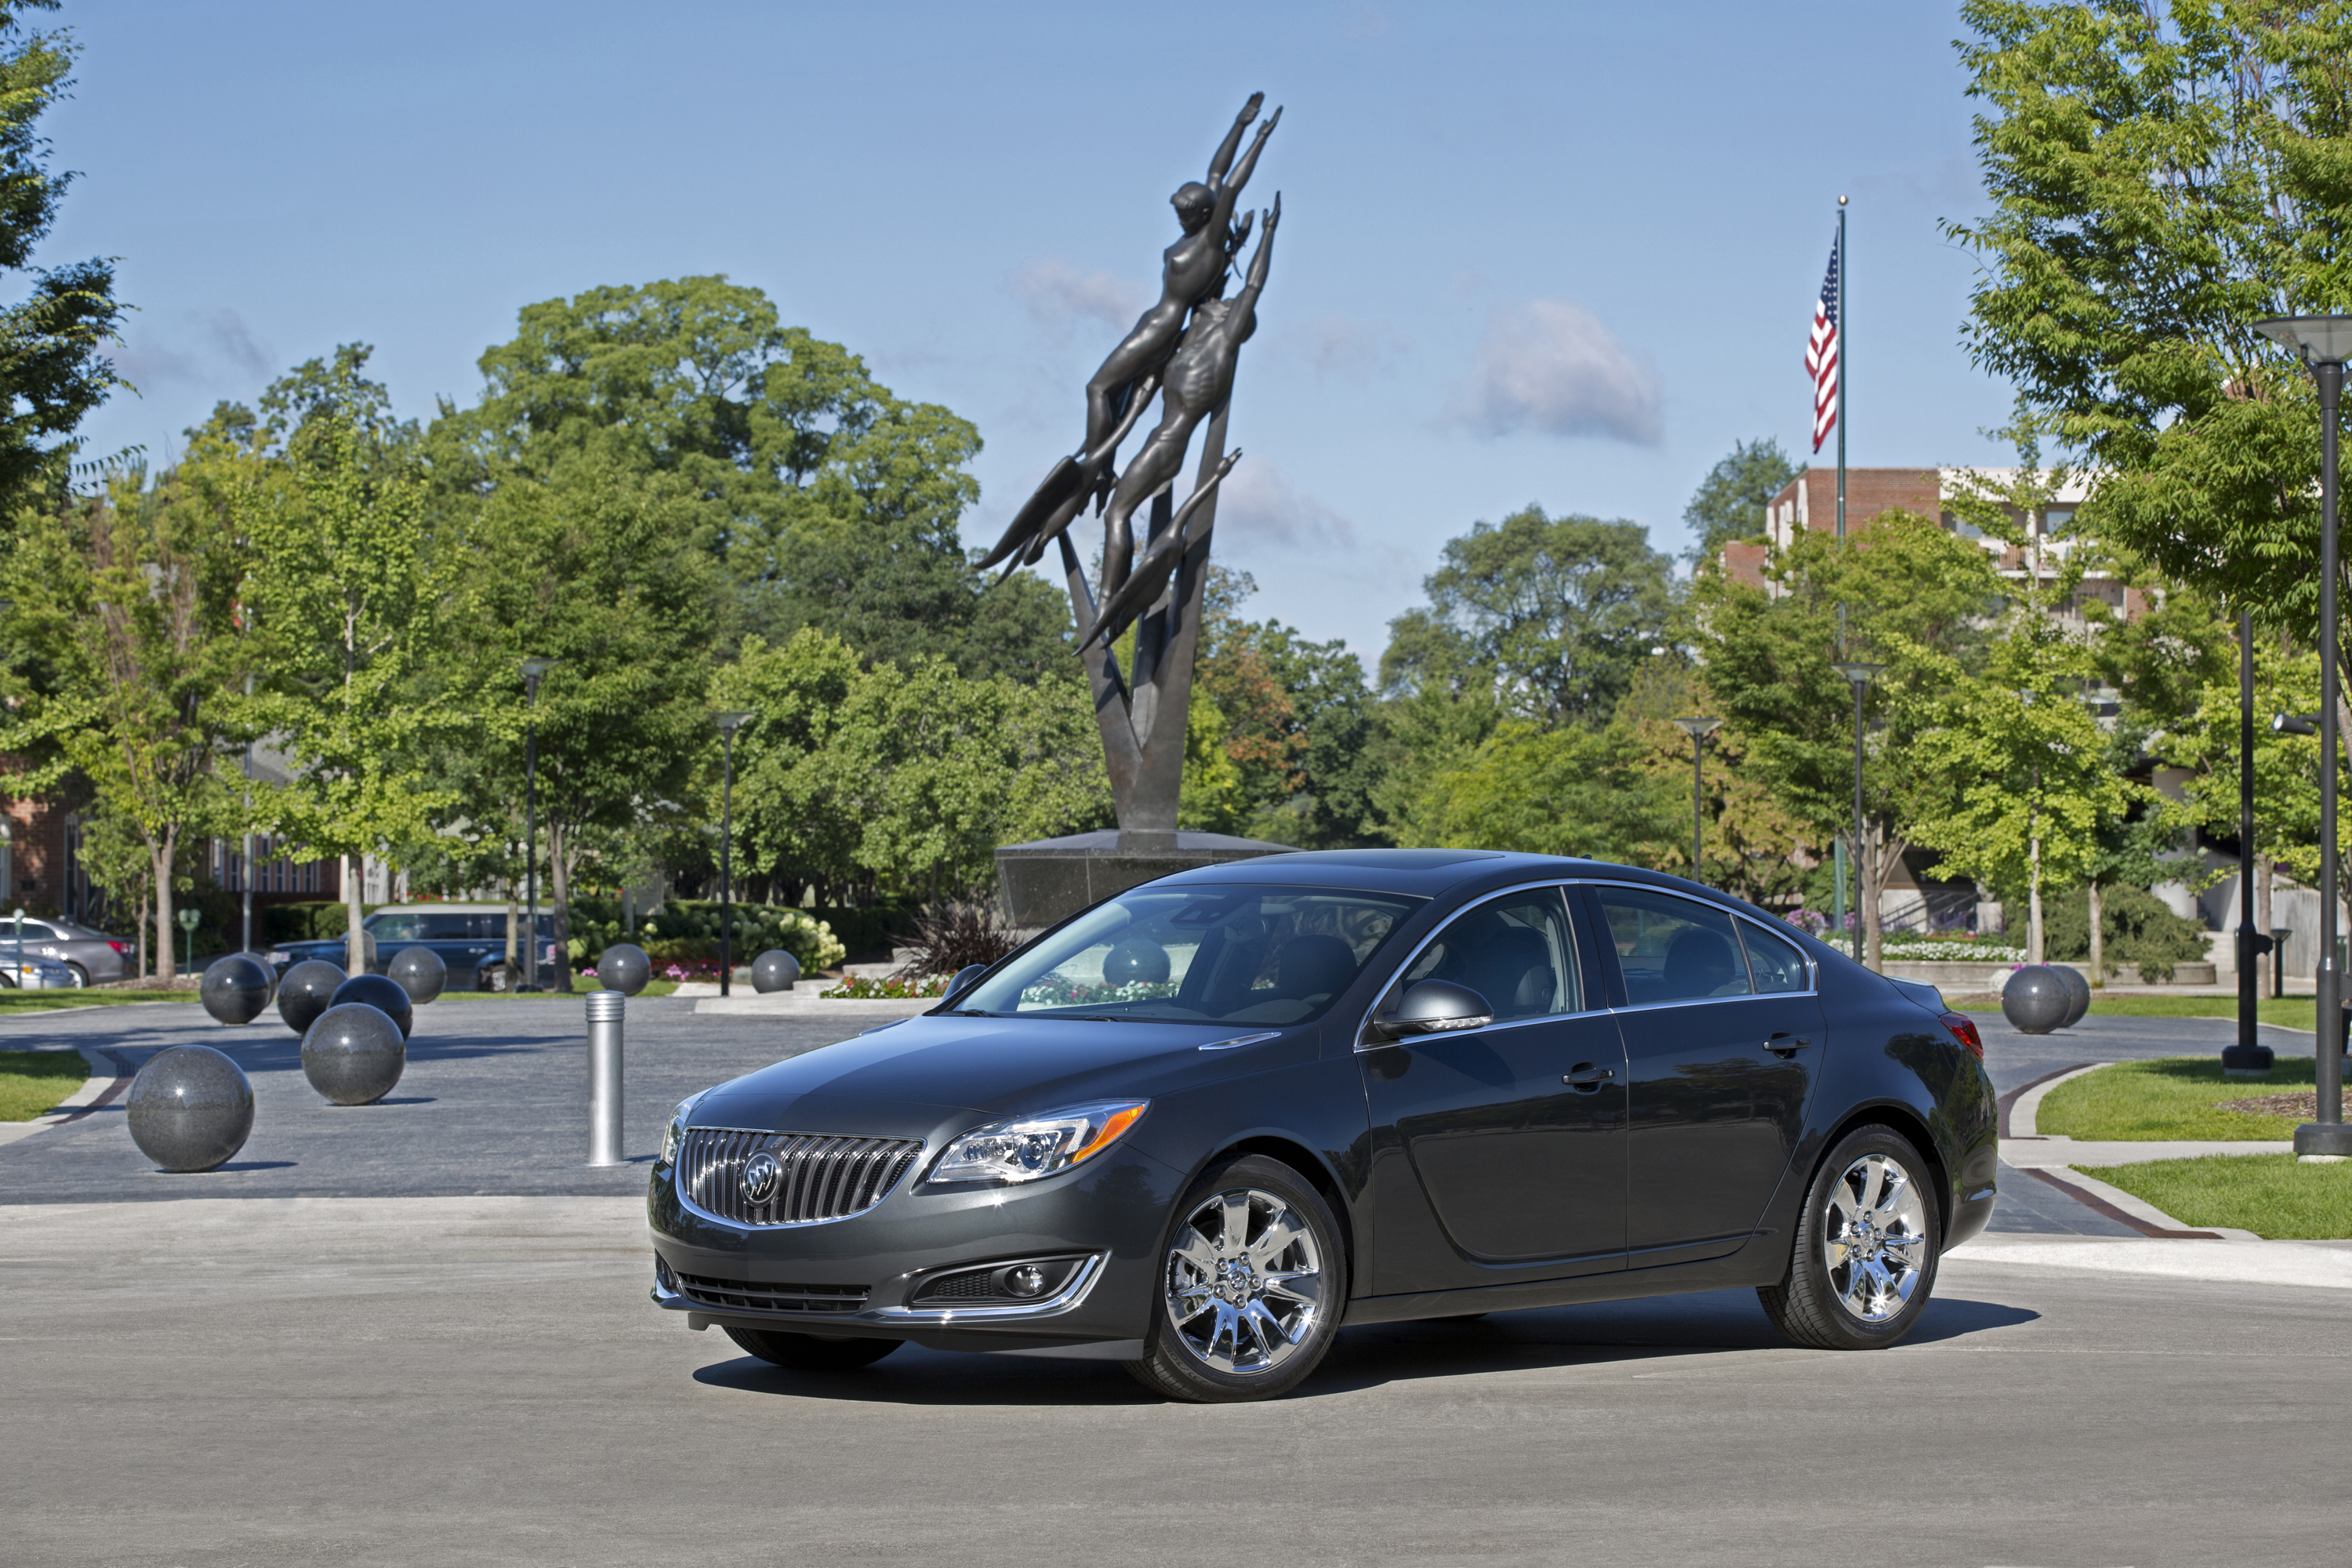 car fast yankee goes doodle all buick day redwhiteandblueveranos the independence lane sedans for